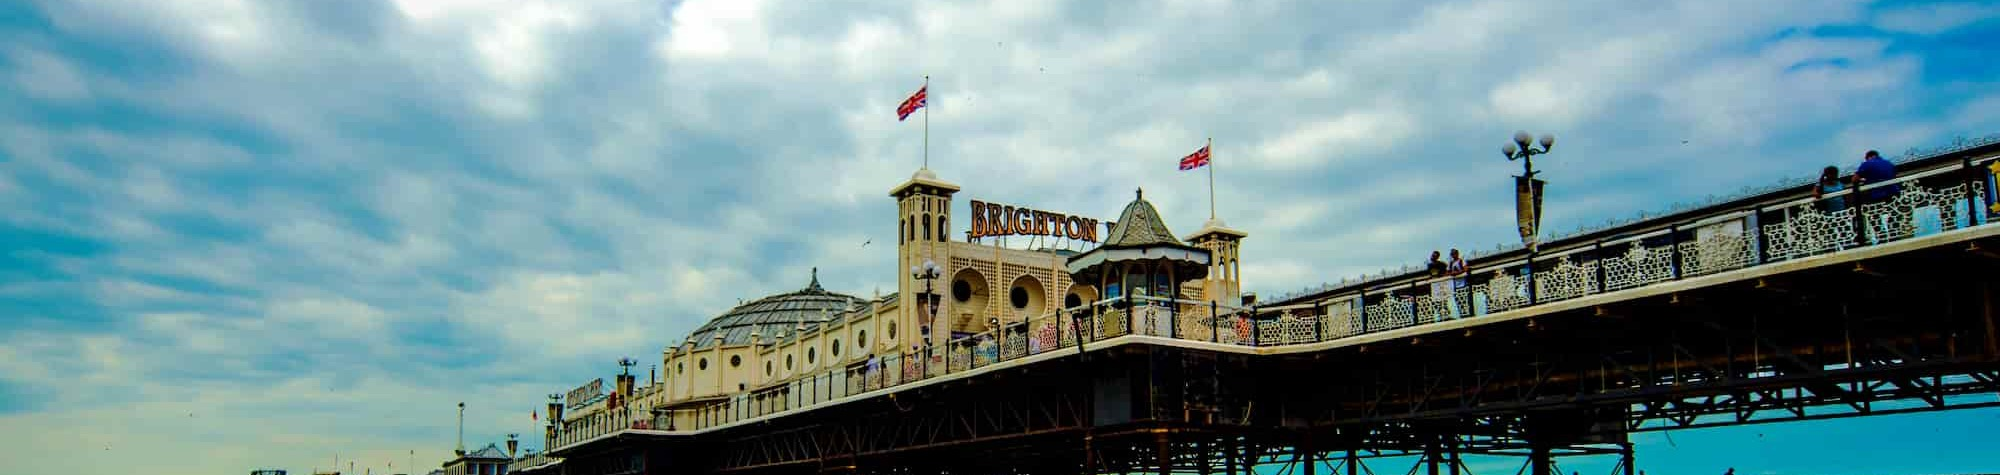 Search Consultancy Brighton Header Image. Featuring panoramic view of iconic Brighton pier and sign overlooking the sea. Home to one of Search Consultancy's exceptional recruitment agencies in England.